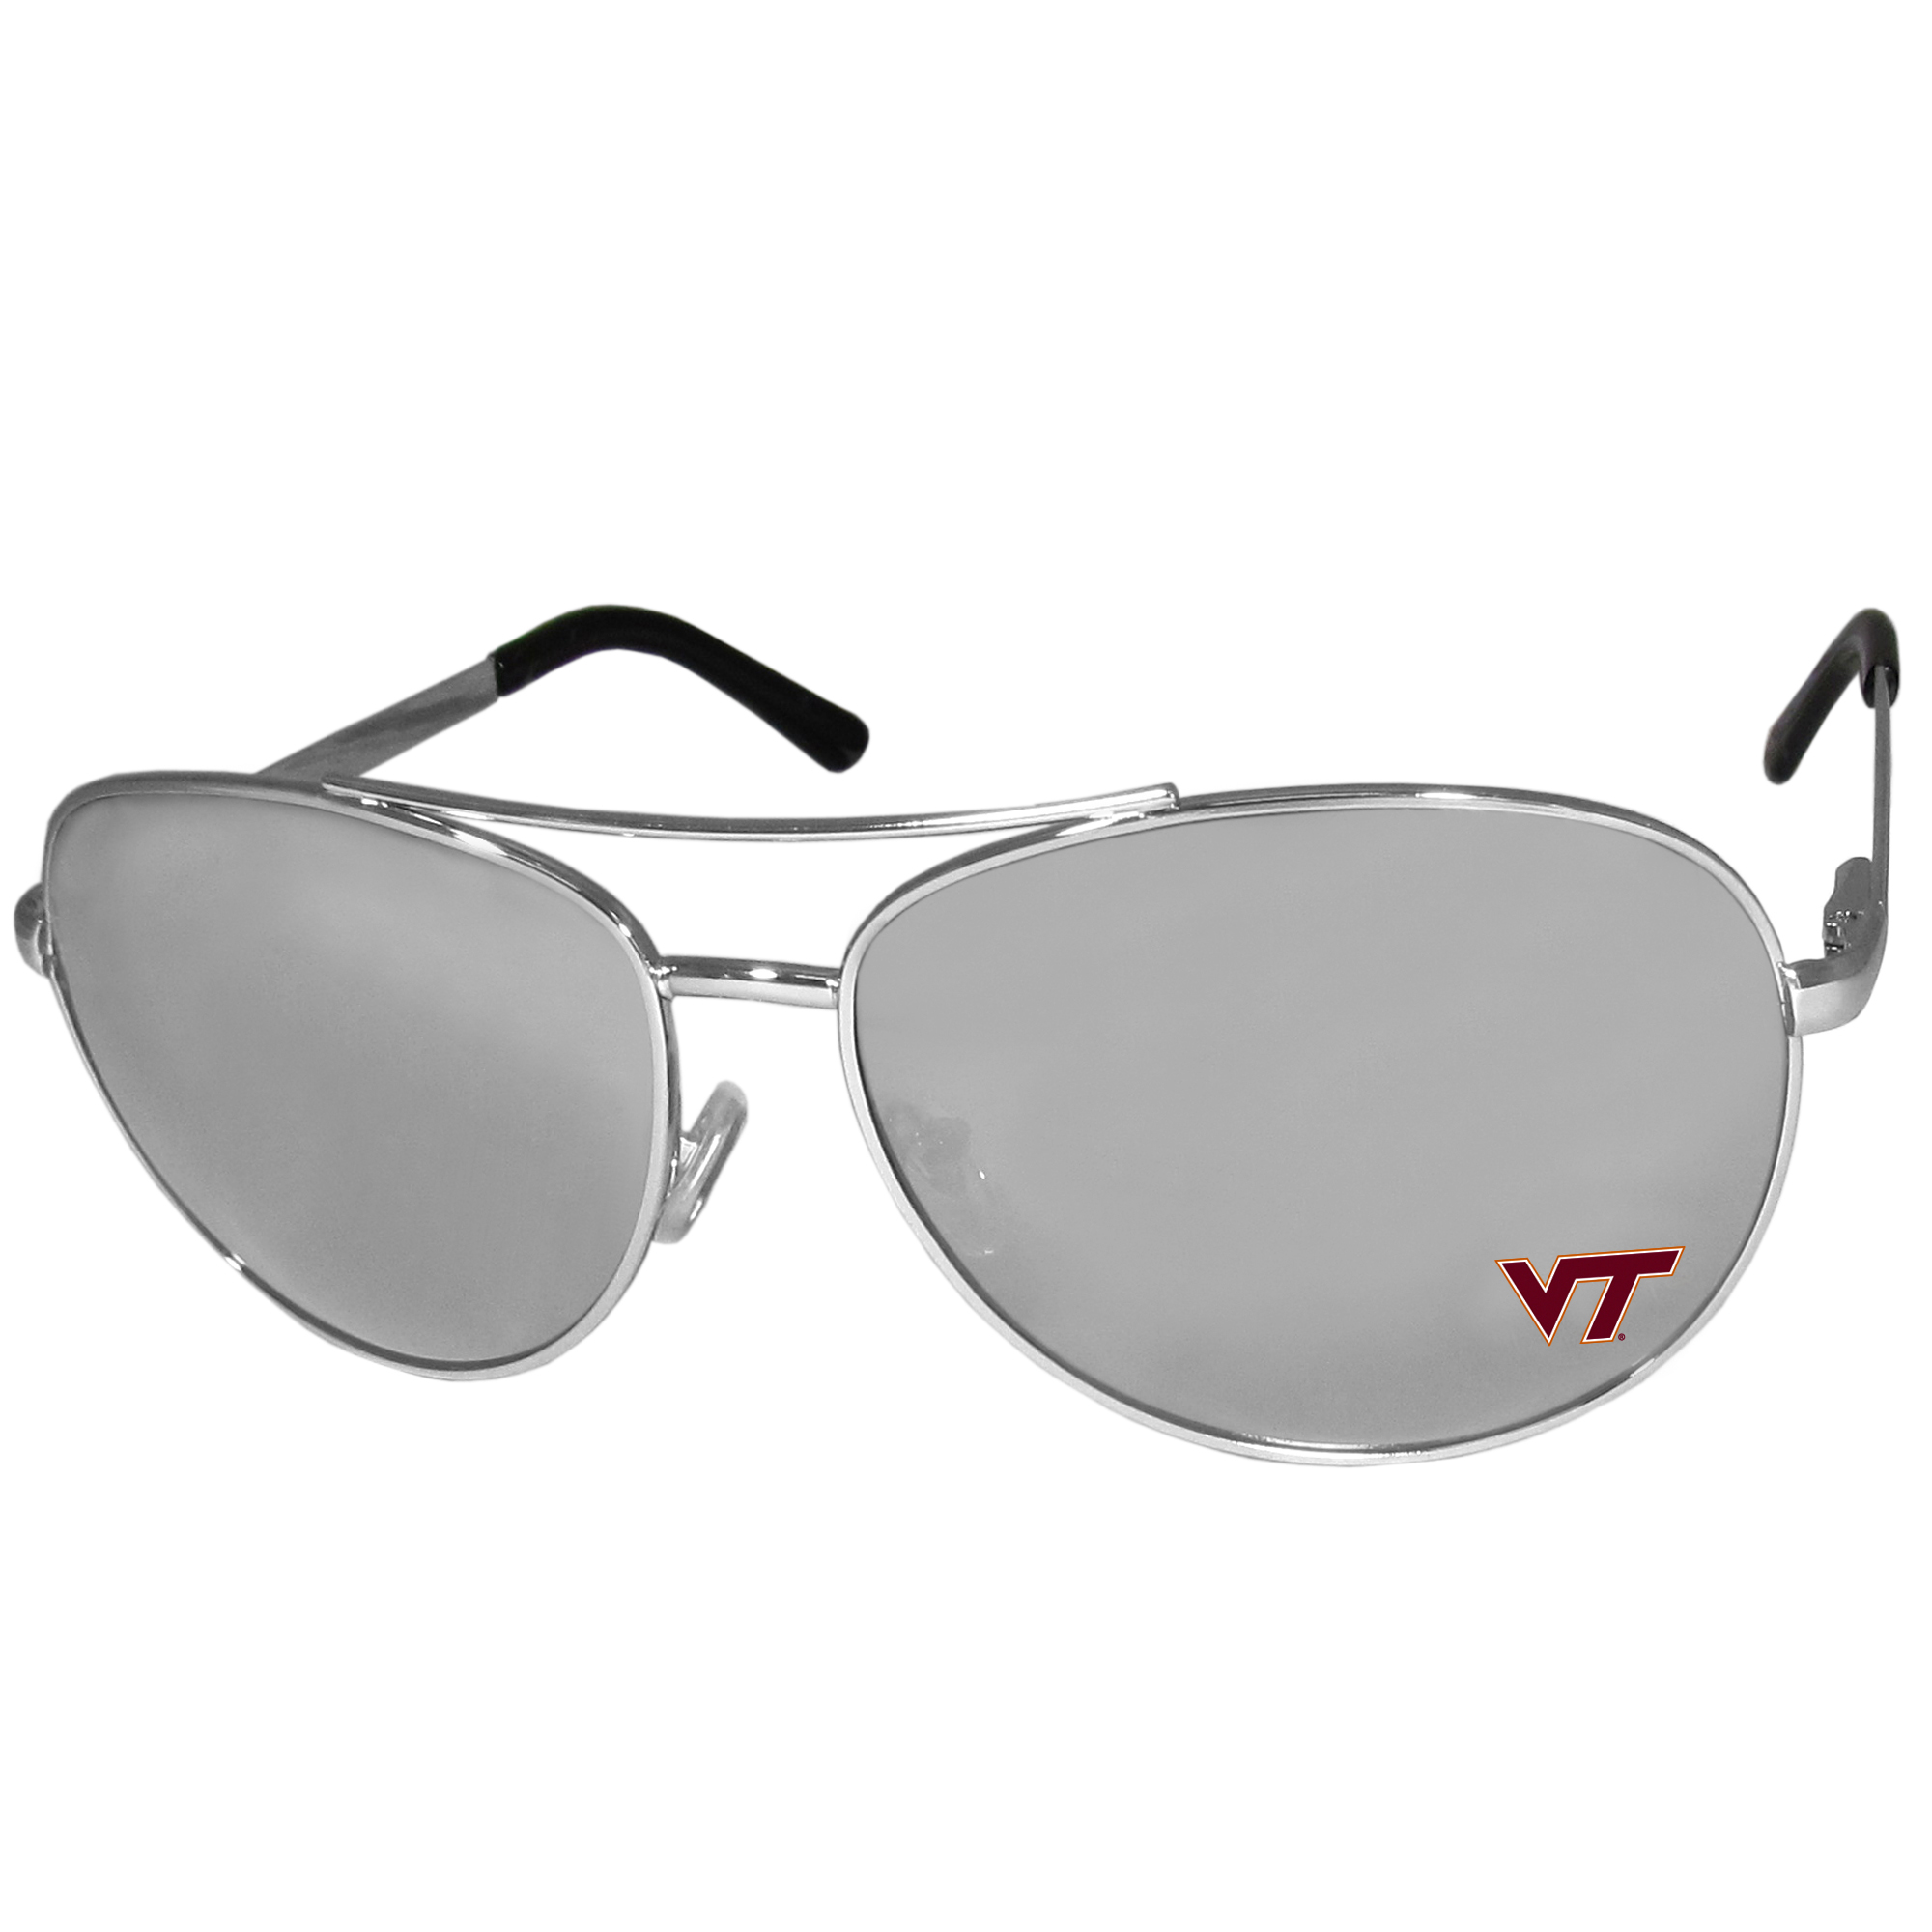 Virginia Tech Hokies Aviator Sunglasses - Our aviator sunglasses have the iconic aviator style with mirrored lenses and metal frames. The glasses feature a silk screened Virginia Tech Hokies logo in the corner of the lense. 100% UVA/UVB protection.